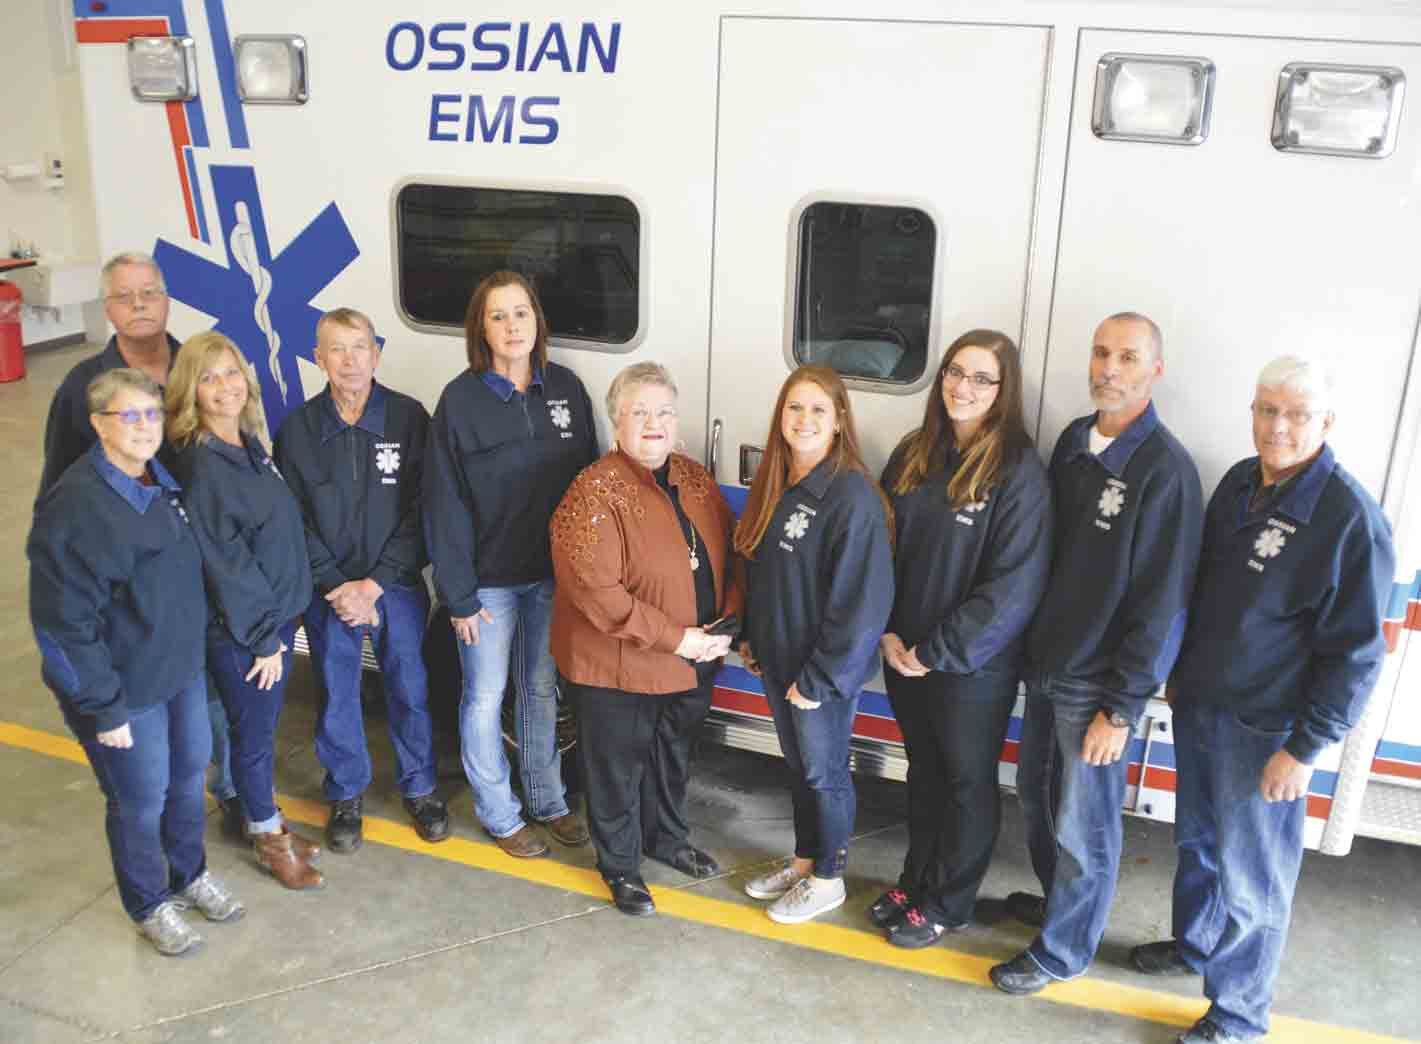 Members of the Ossian volunteer EMS crew include (l-r) Bonnie Steinberg, Denis Holien (back), Lynette Wenthold, Darwin Linderbaum, Lori Hemesath, Eleanor Drew (treasurer), Jackie Becker, Ana Scott, Terri Wenthold, and Dale Beckman. Missing from the photo is Leland Monroe. (Zakary Kriener...